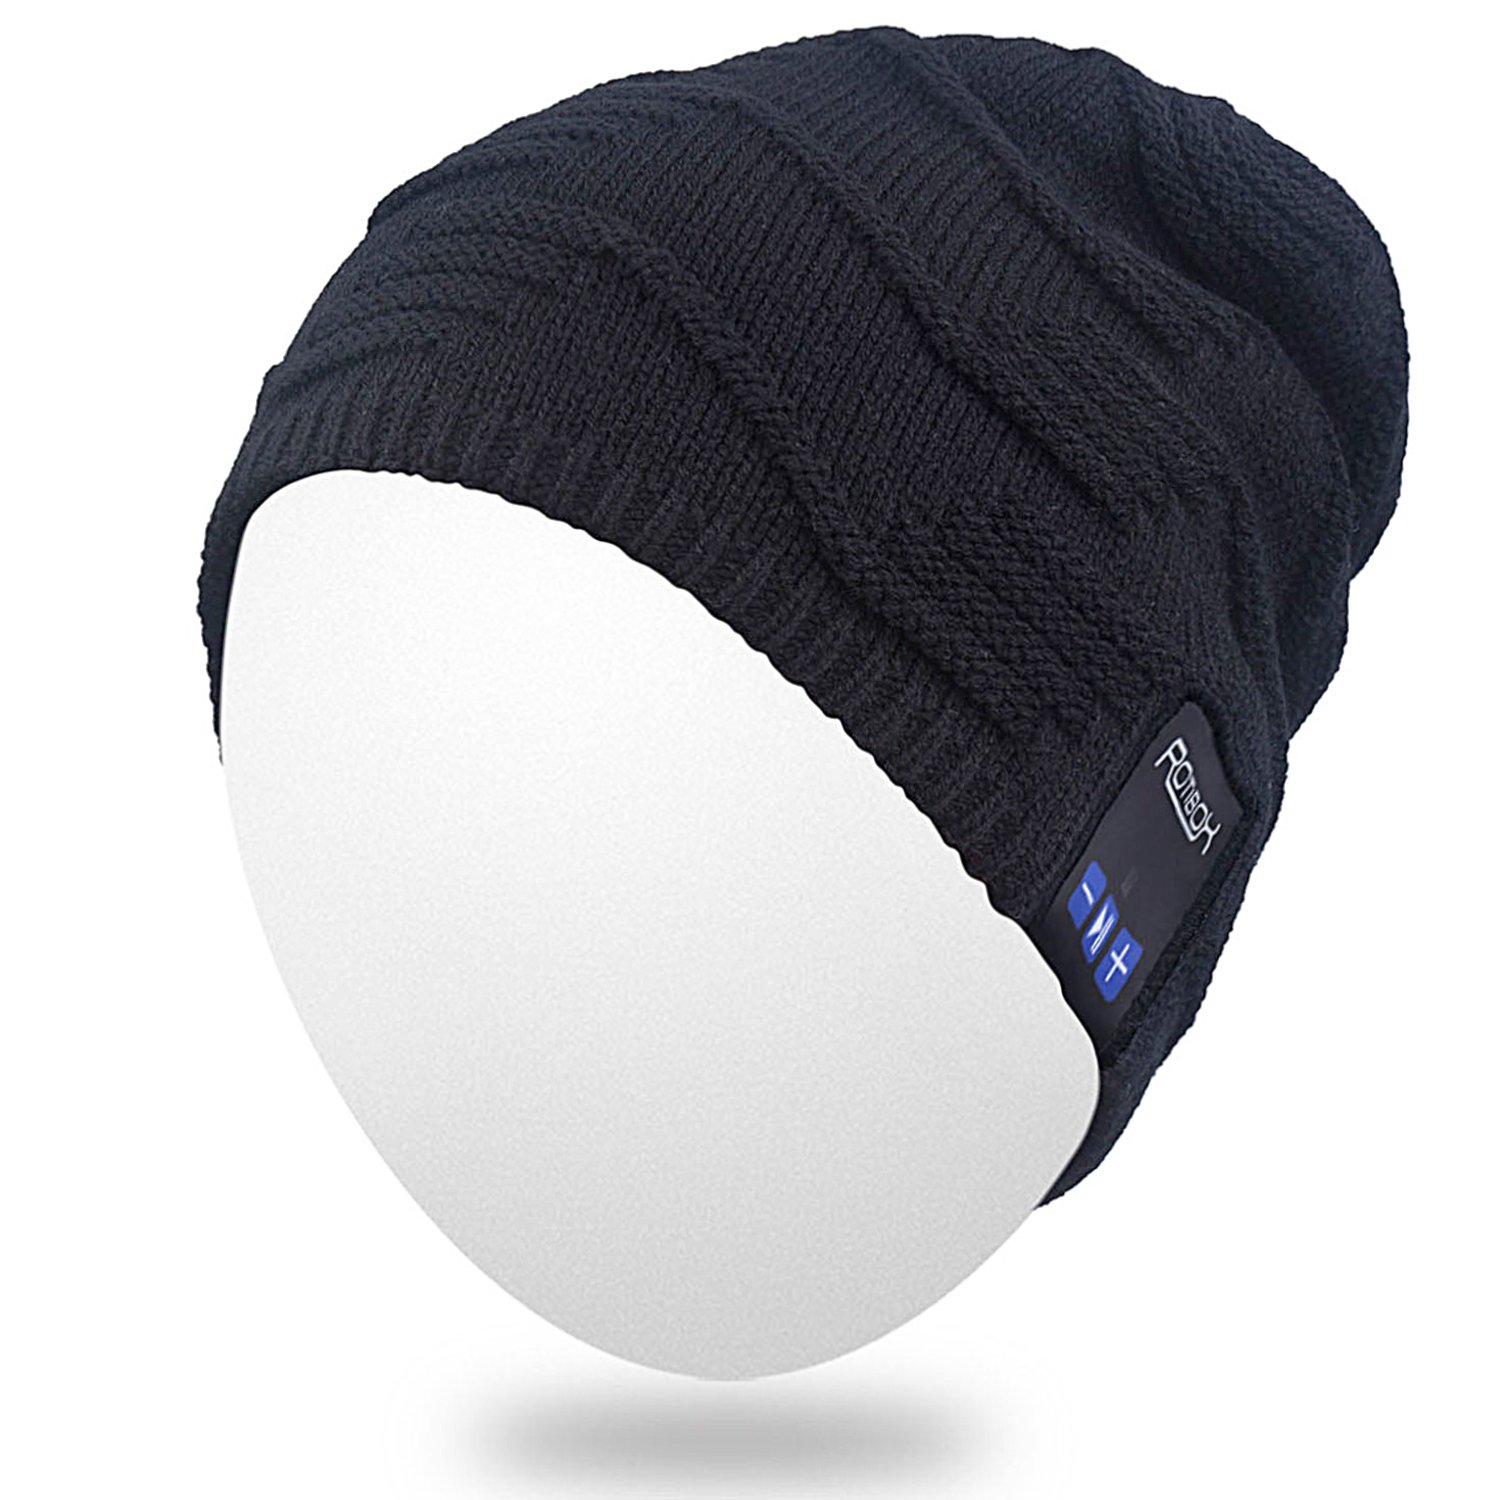 Qshell Outdoor Bluetooth Beanie Hat Slouchy Knit Skully Cap with Wireless Bluetooth Headphone Headset Earphone Music Audio Hands-Free Phone Call for Winter Sports Fitness Gym Exercise Workout - Black